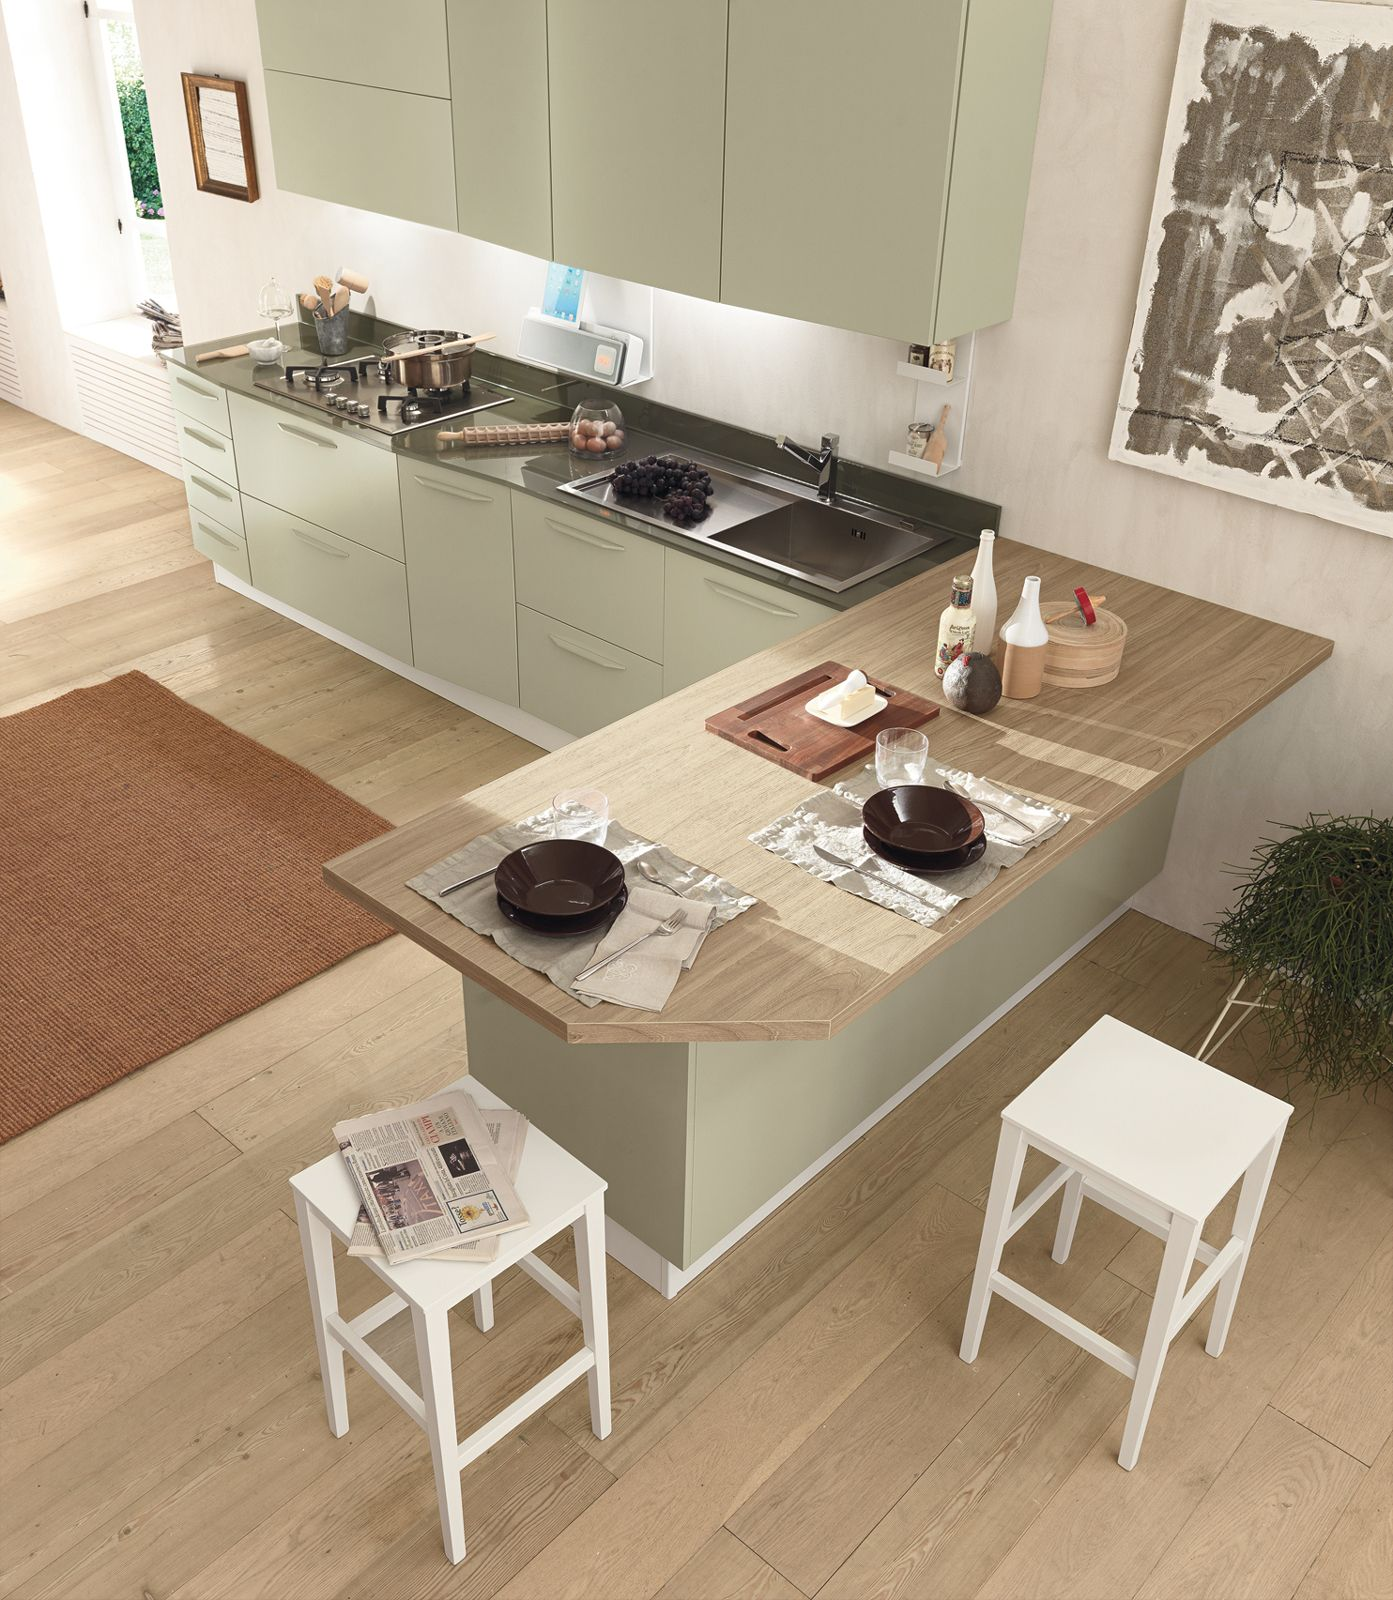 Cucine con grandi piani di lavoro | Kitchens, Interiors and Kitchen ...